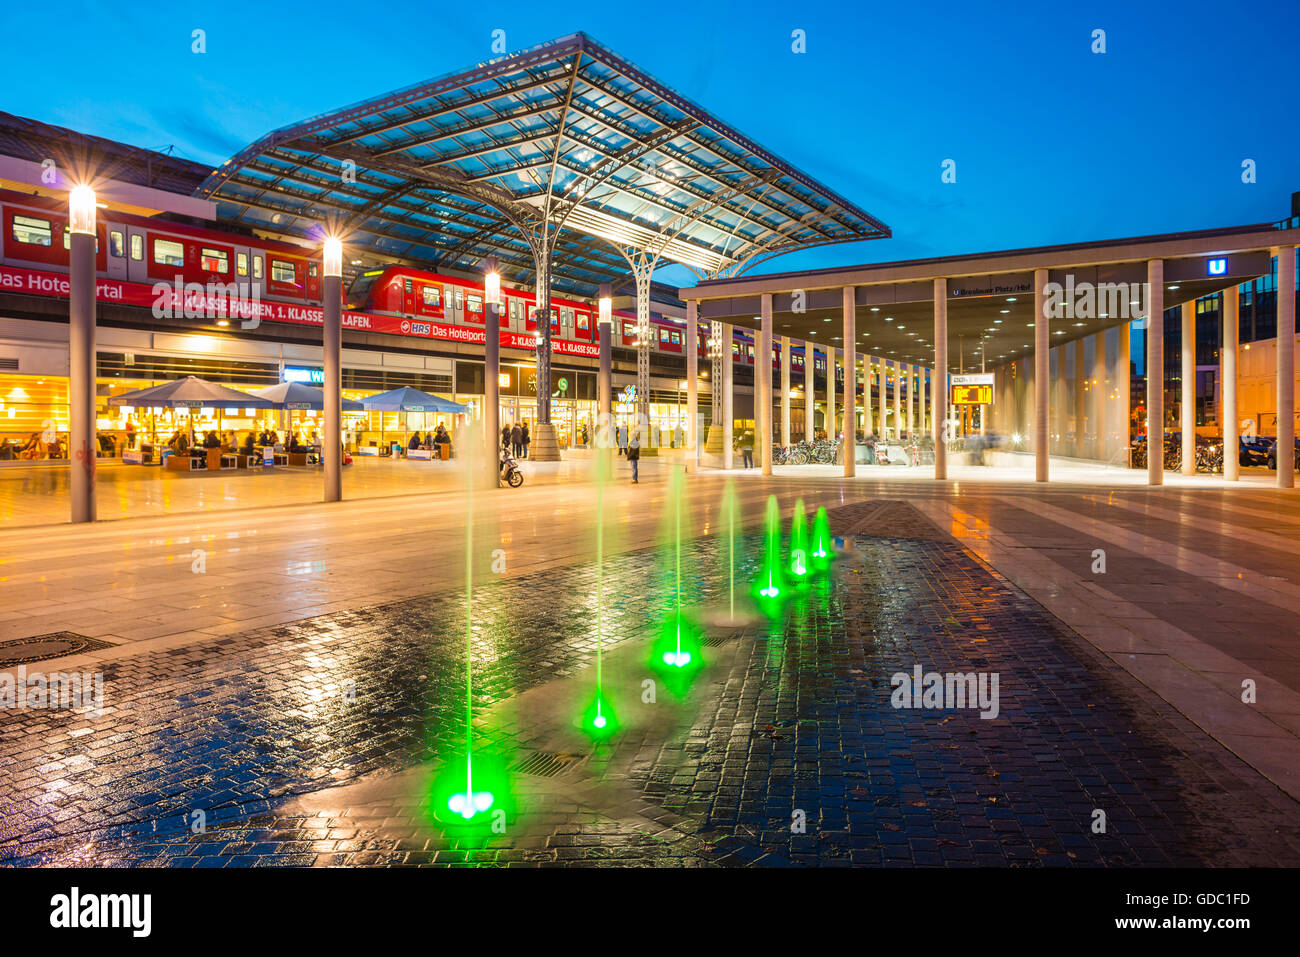 Breslau place,entrance to the central station,Cologne,North Rhine-Westphalia,Germany,Europe - Stock Image